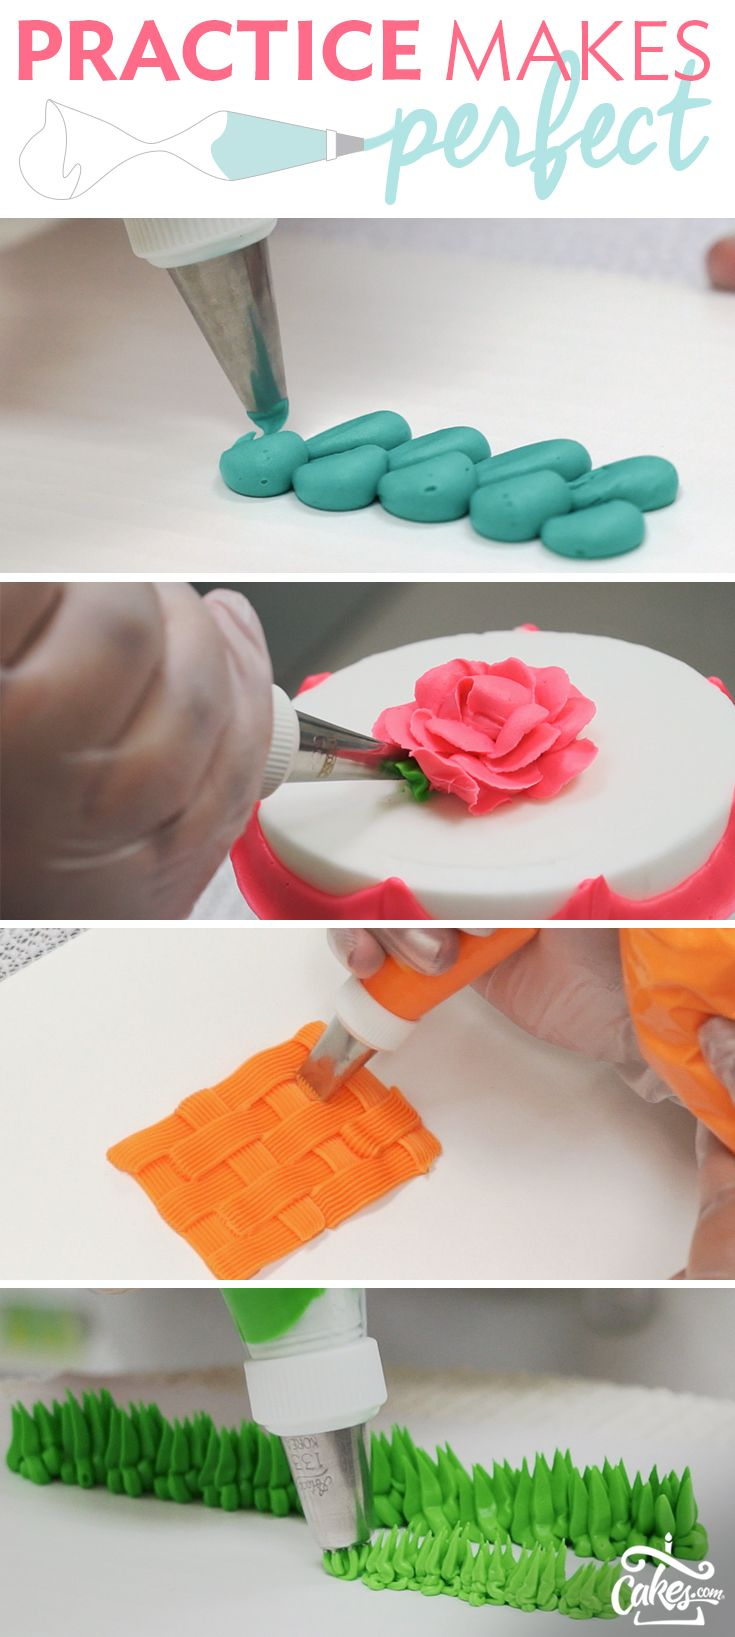 Learn how to pipe buttercream like a pro and find tutorials on how to achieve popular piping techniques.